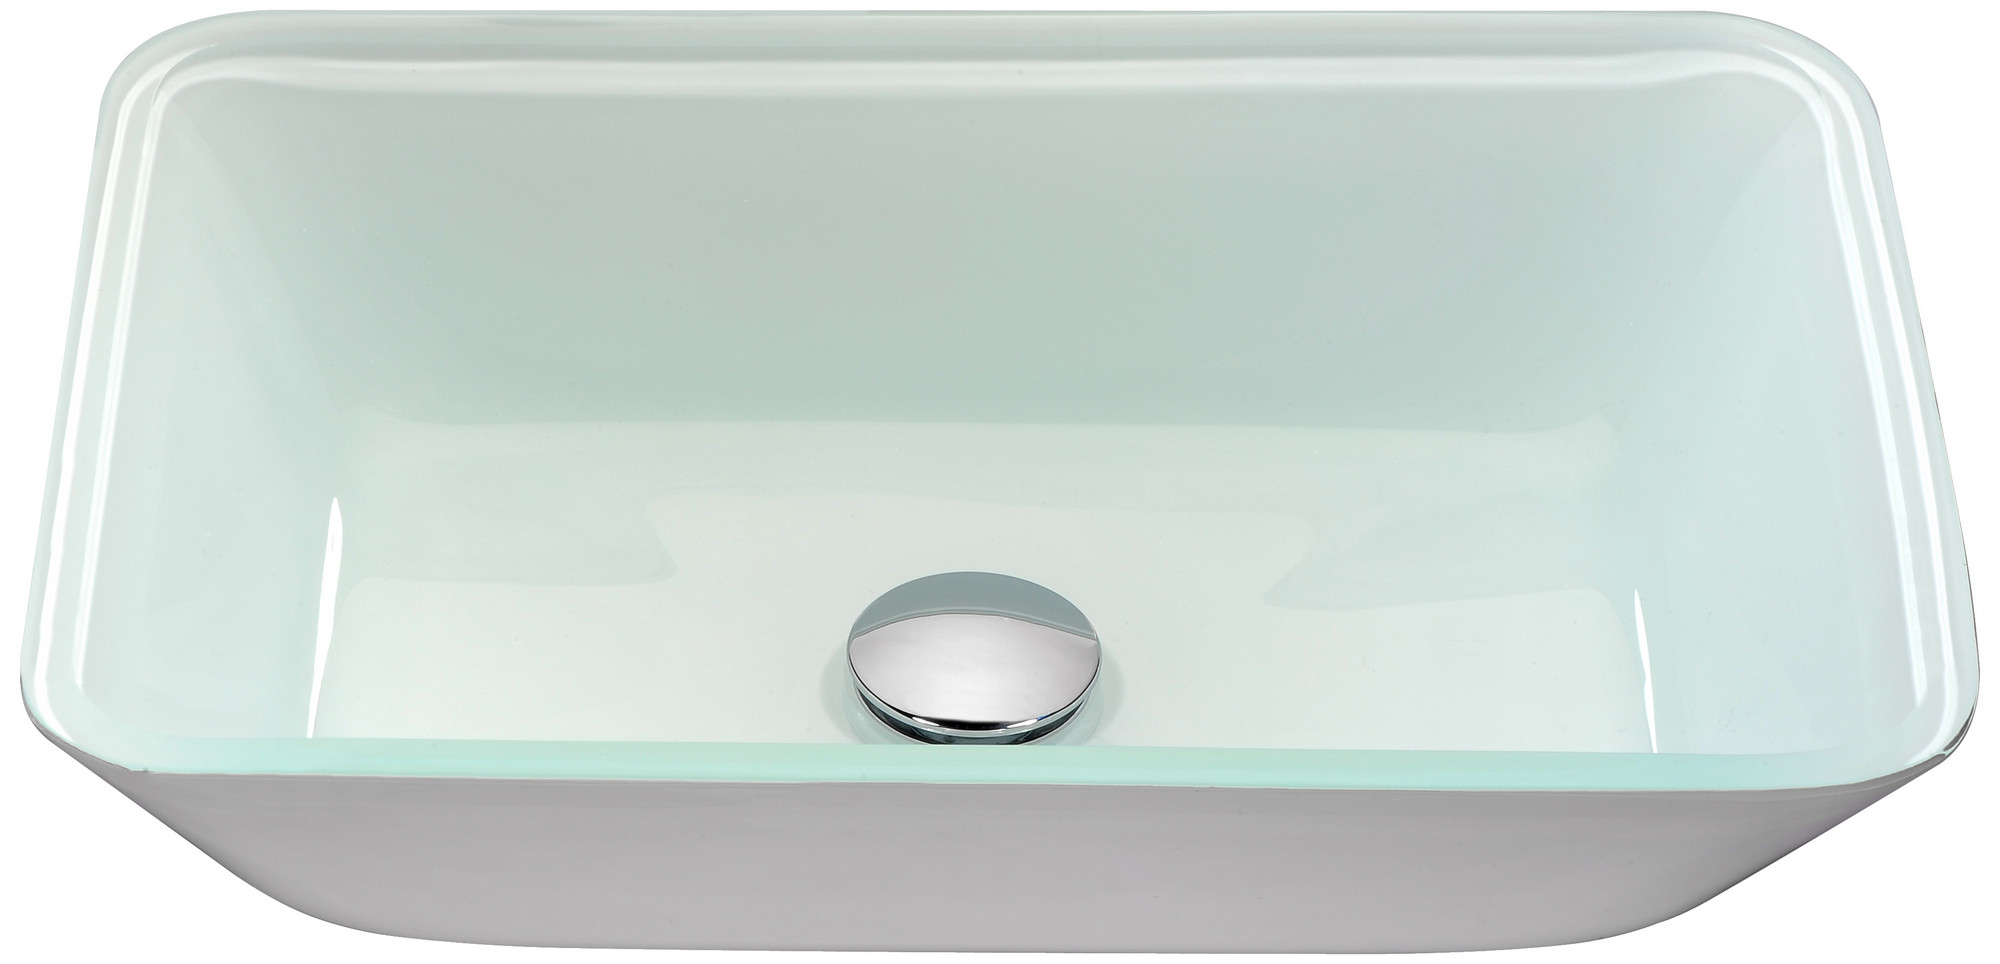 ANZZI LS-AZ194 Broad Series Handcrafted Deco-Glass Vessel Sink In White